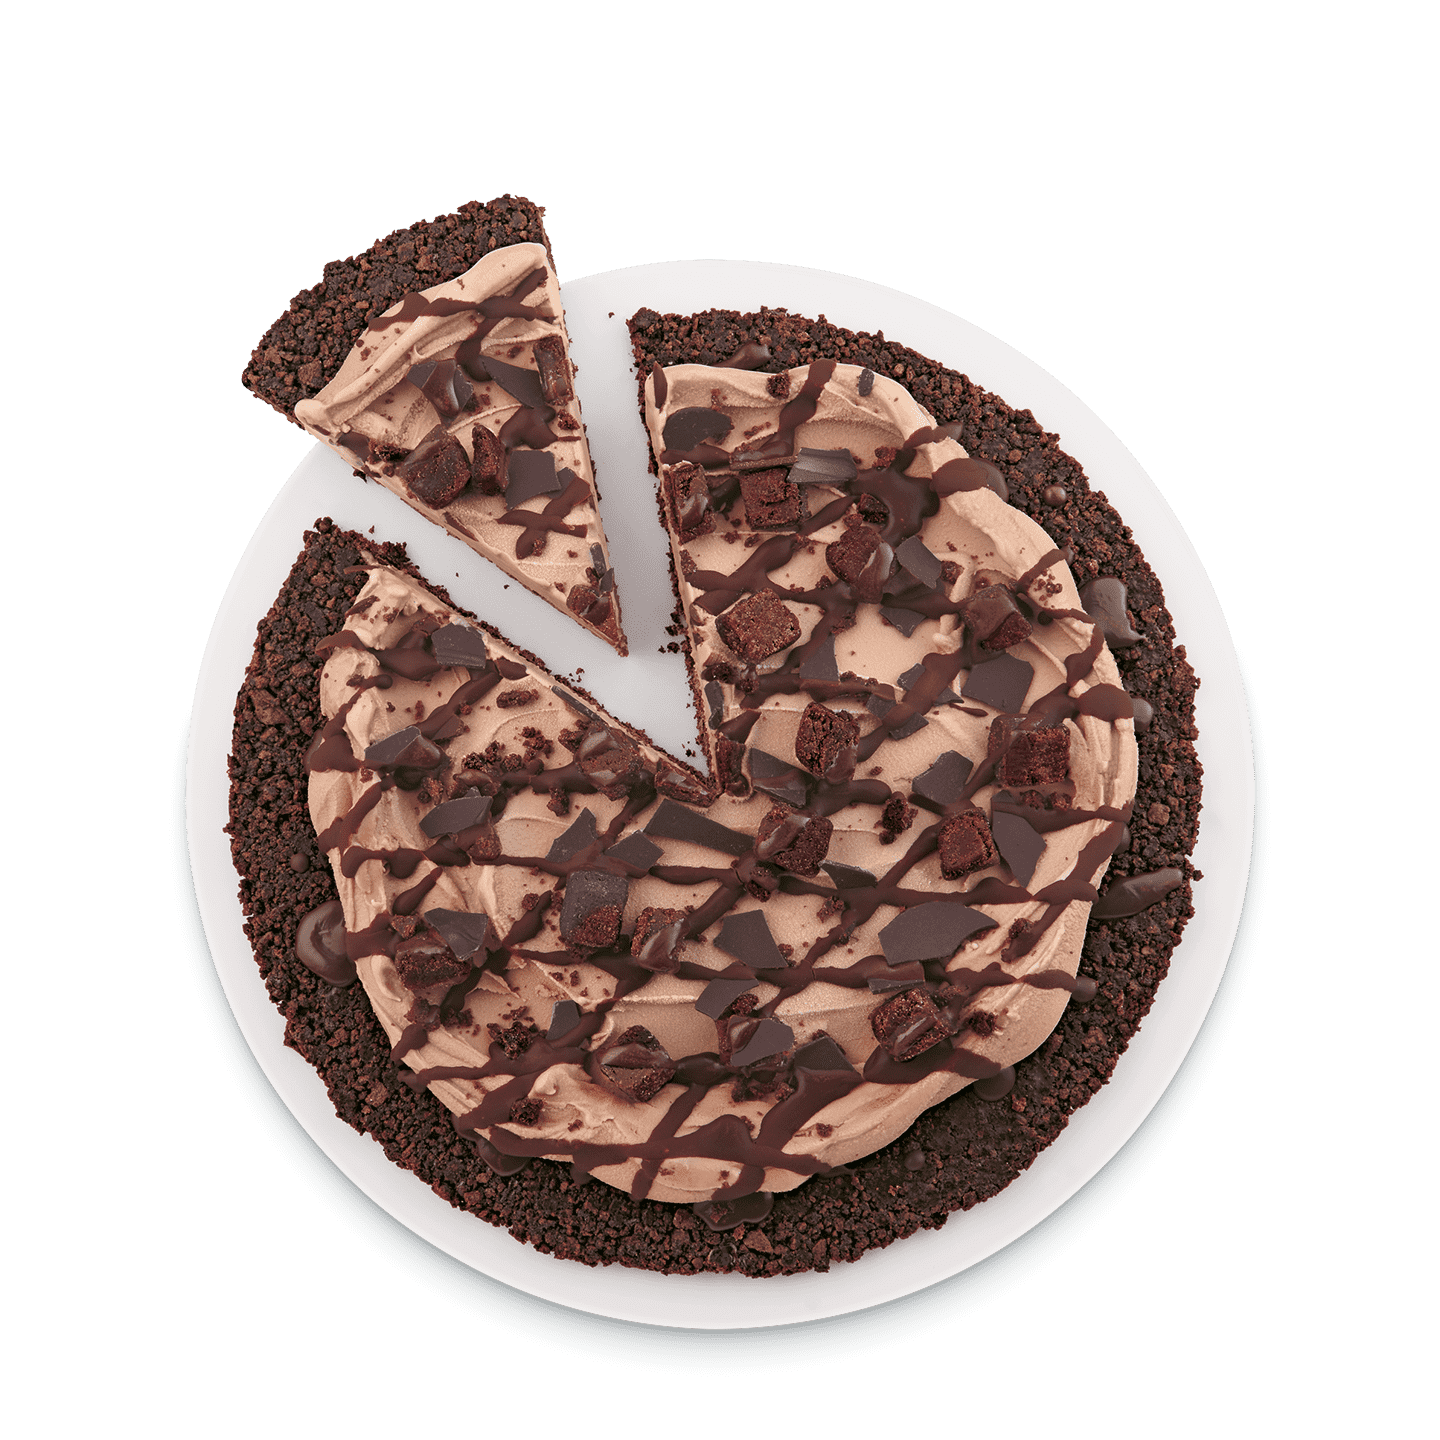 Choco Brownie Treatzza Pizza